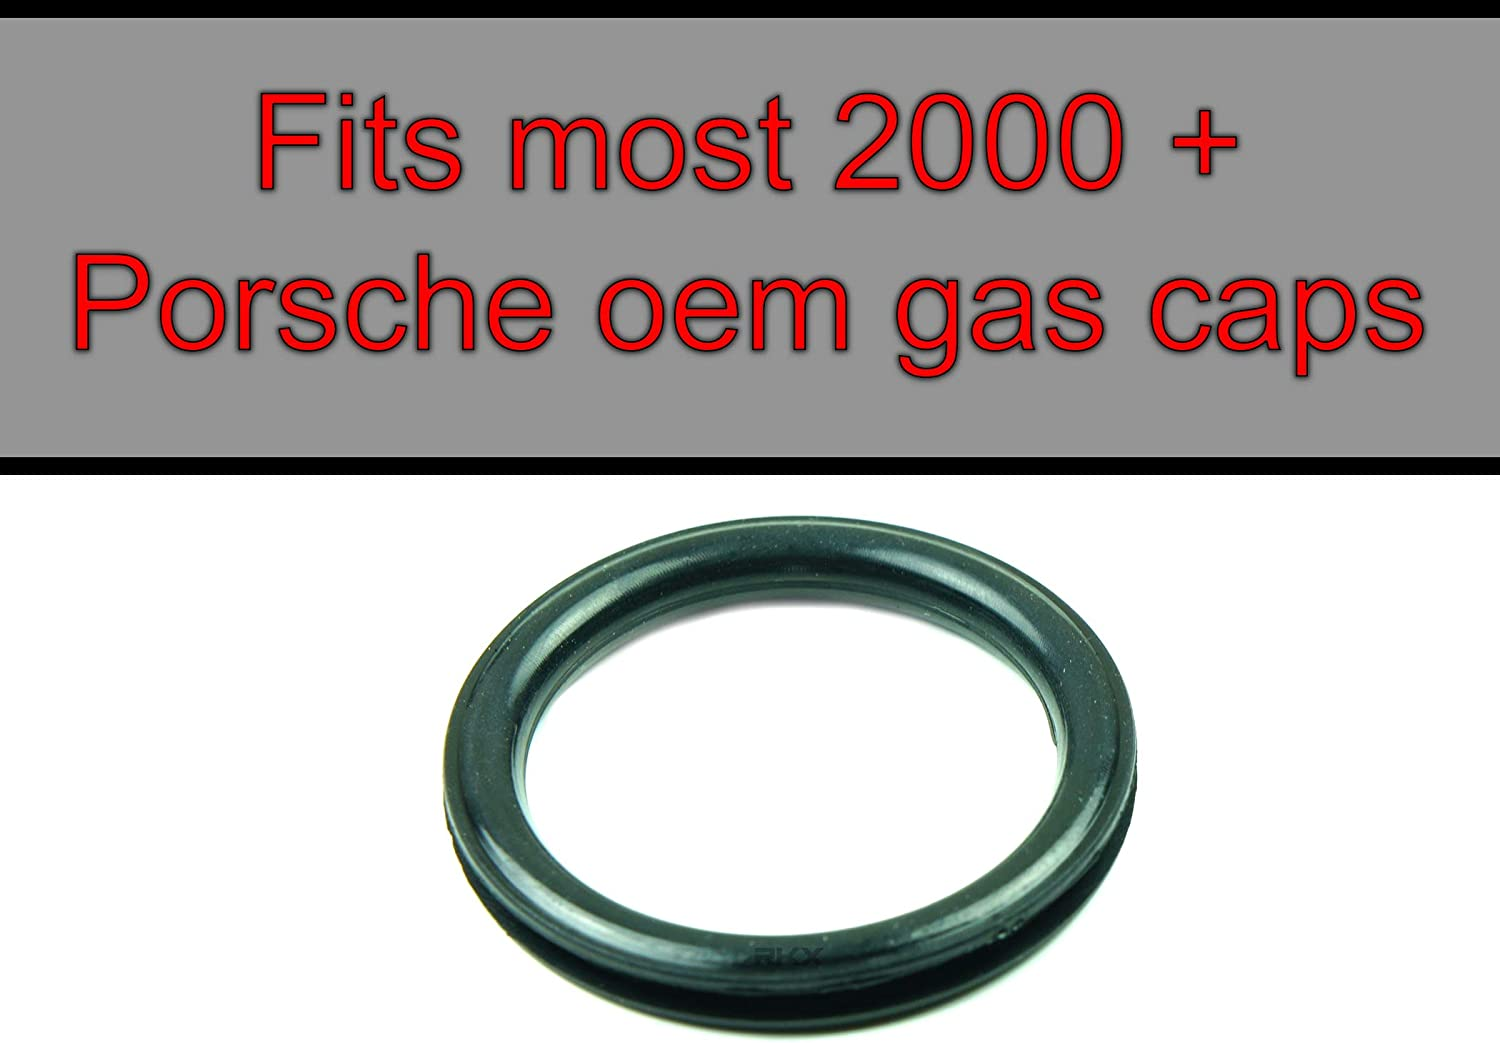 RKX Gas cap replacement seal FOR Porsche 2000-2015 996 997 986 987 981 Fuel